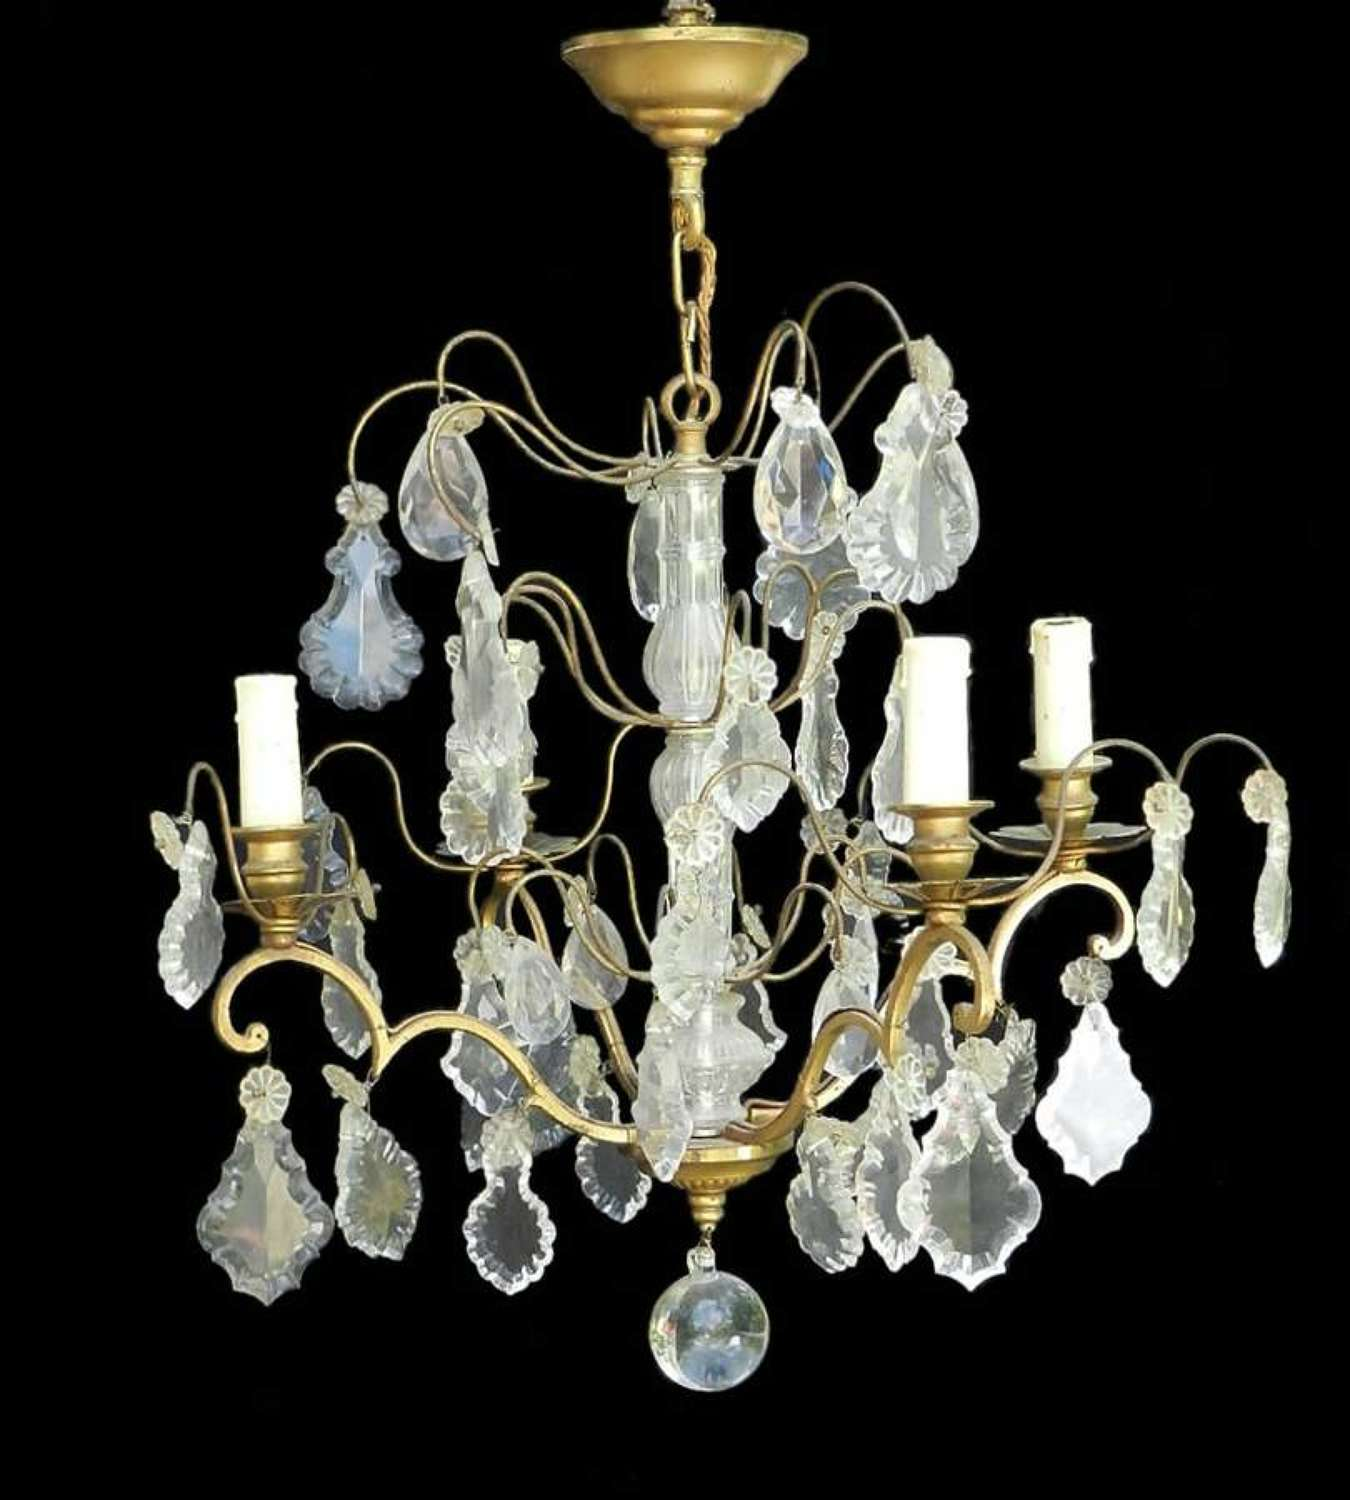 French Drop Chandelier c1900